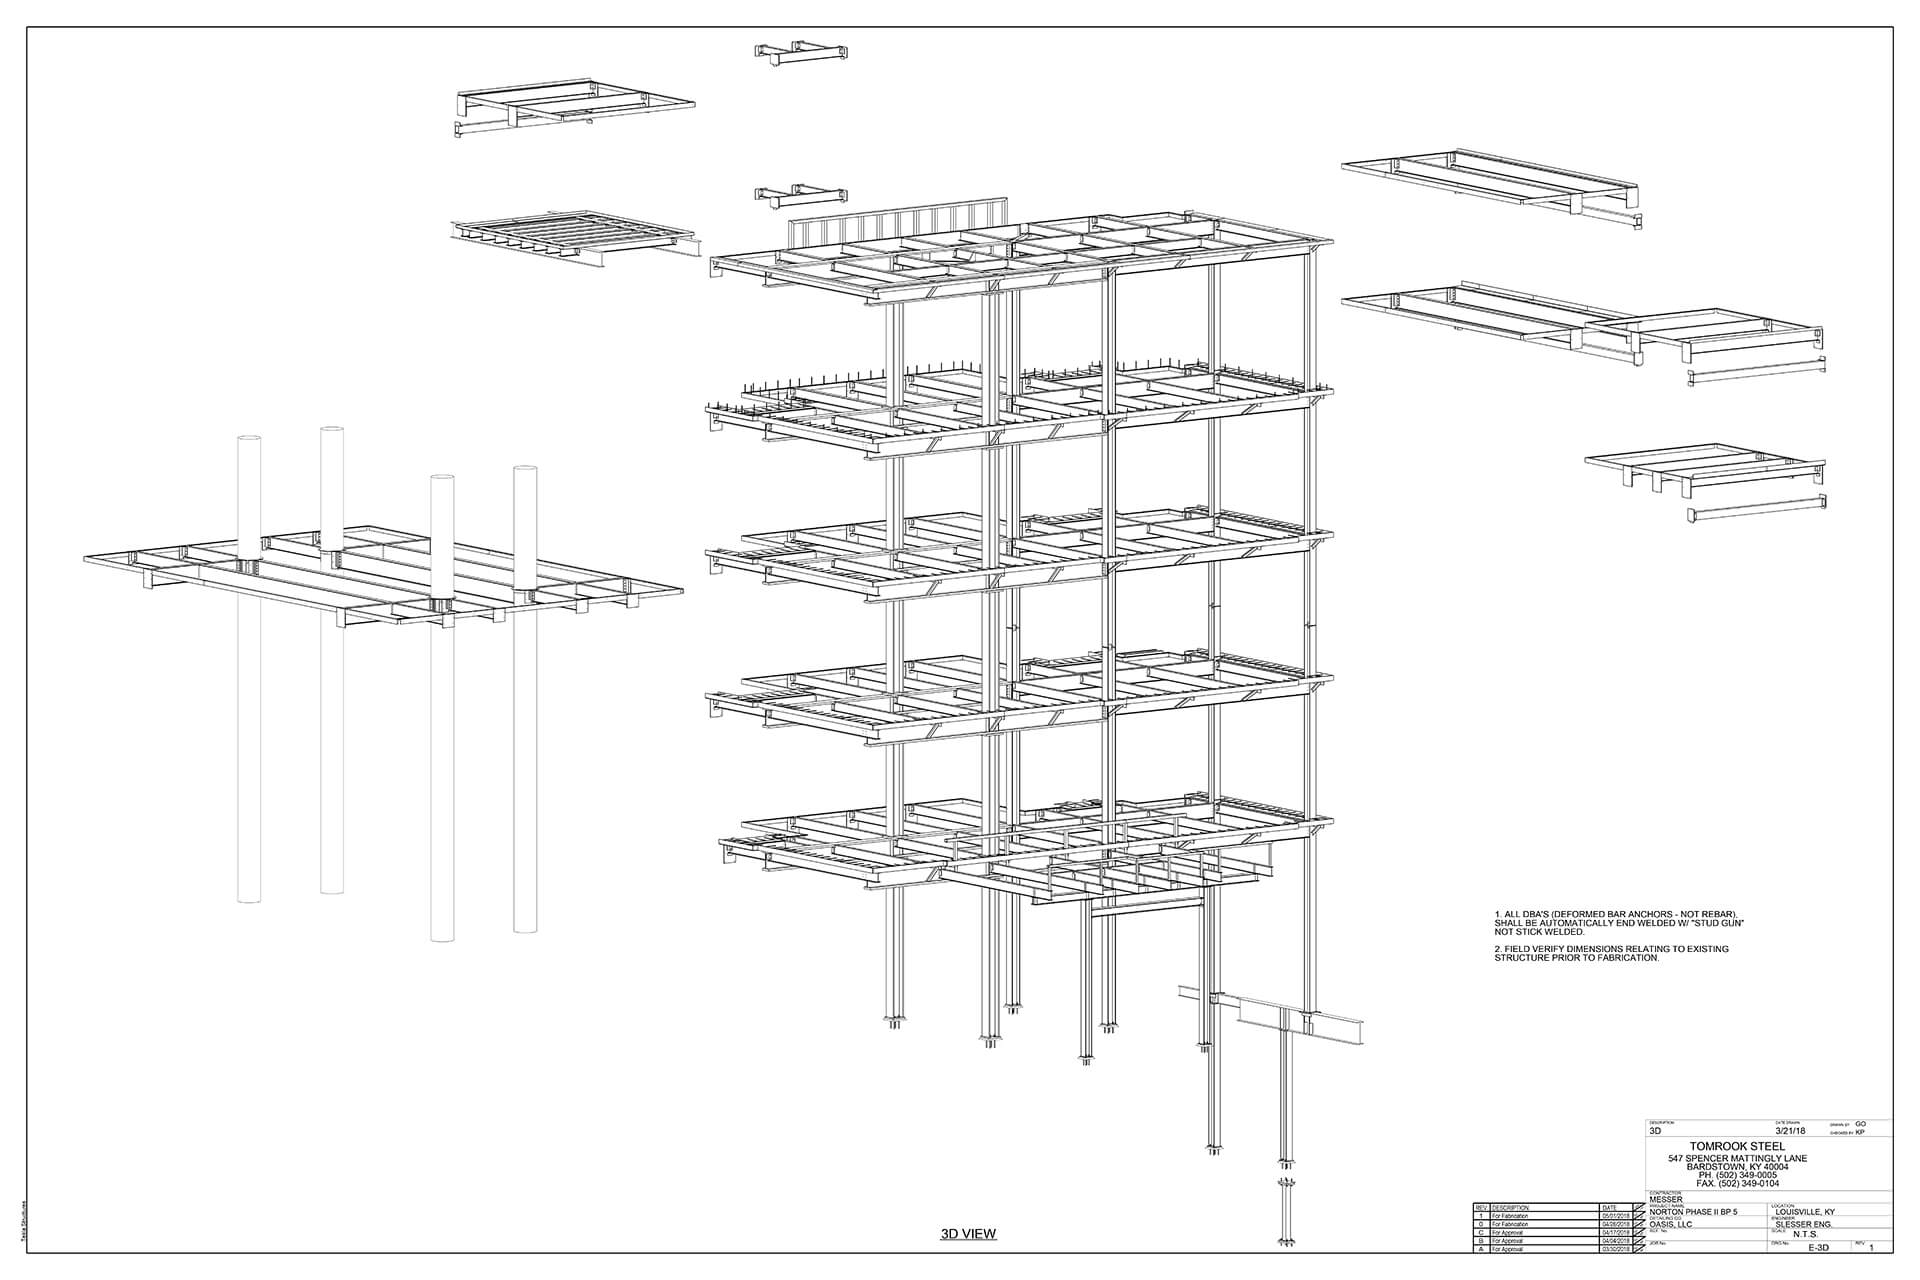 Shop fabrication and erection drawings